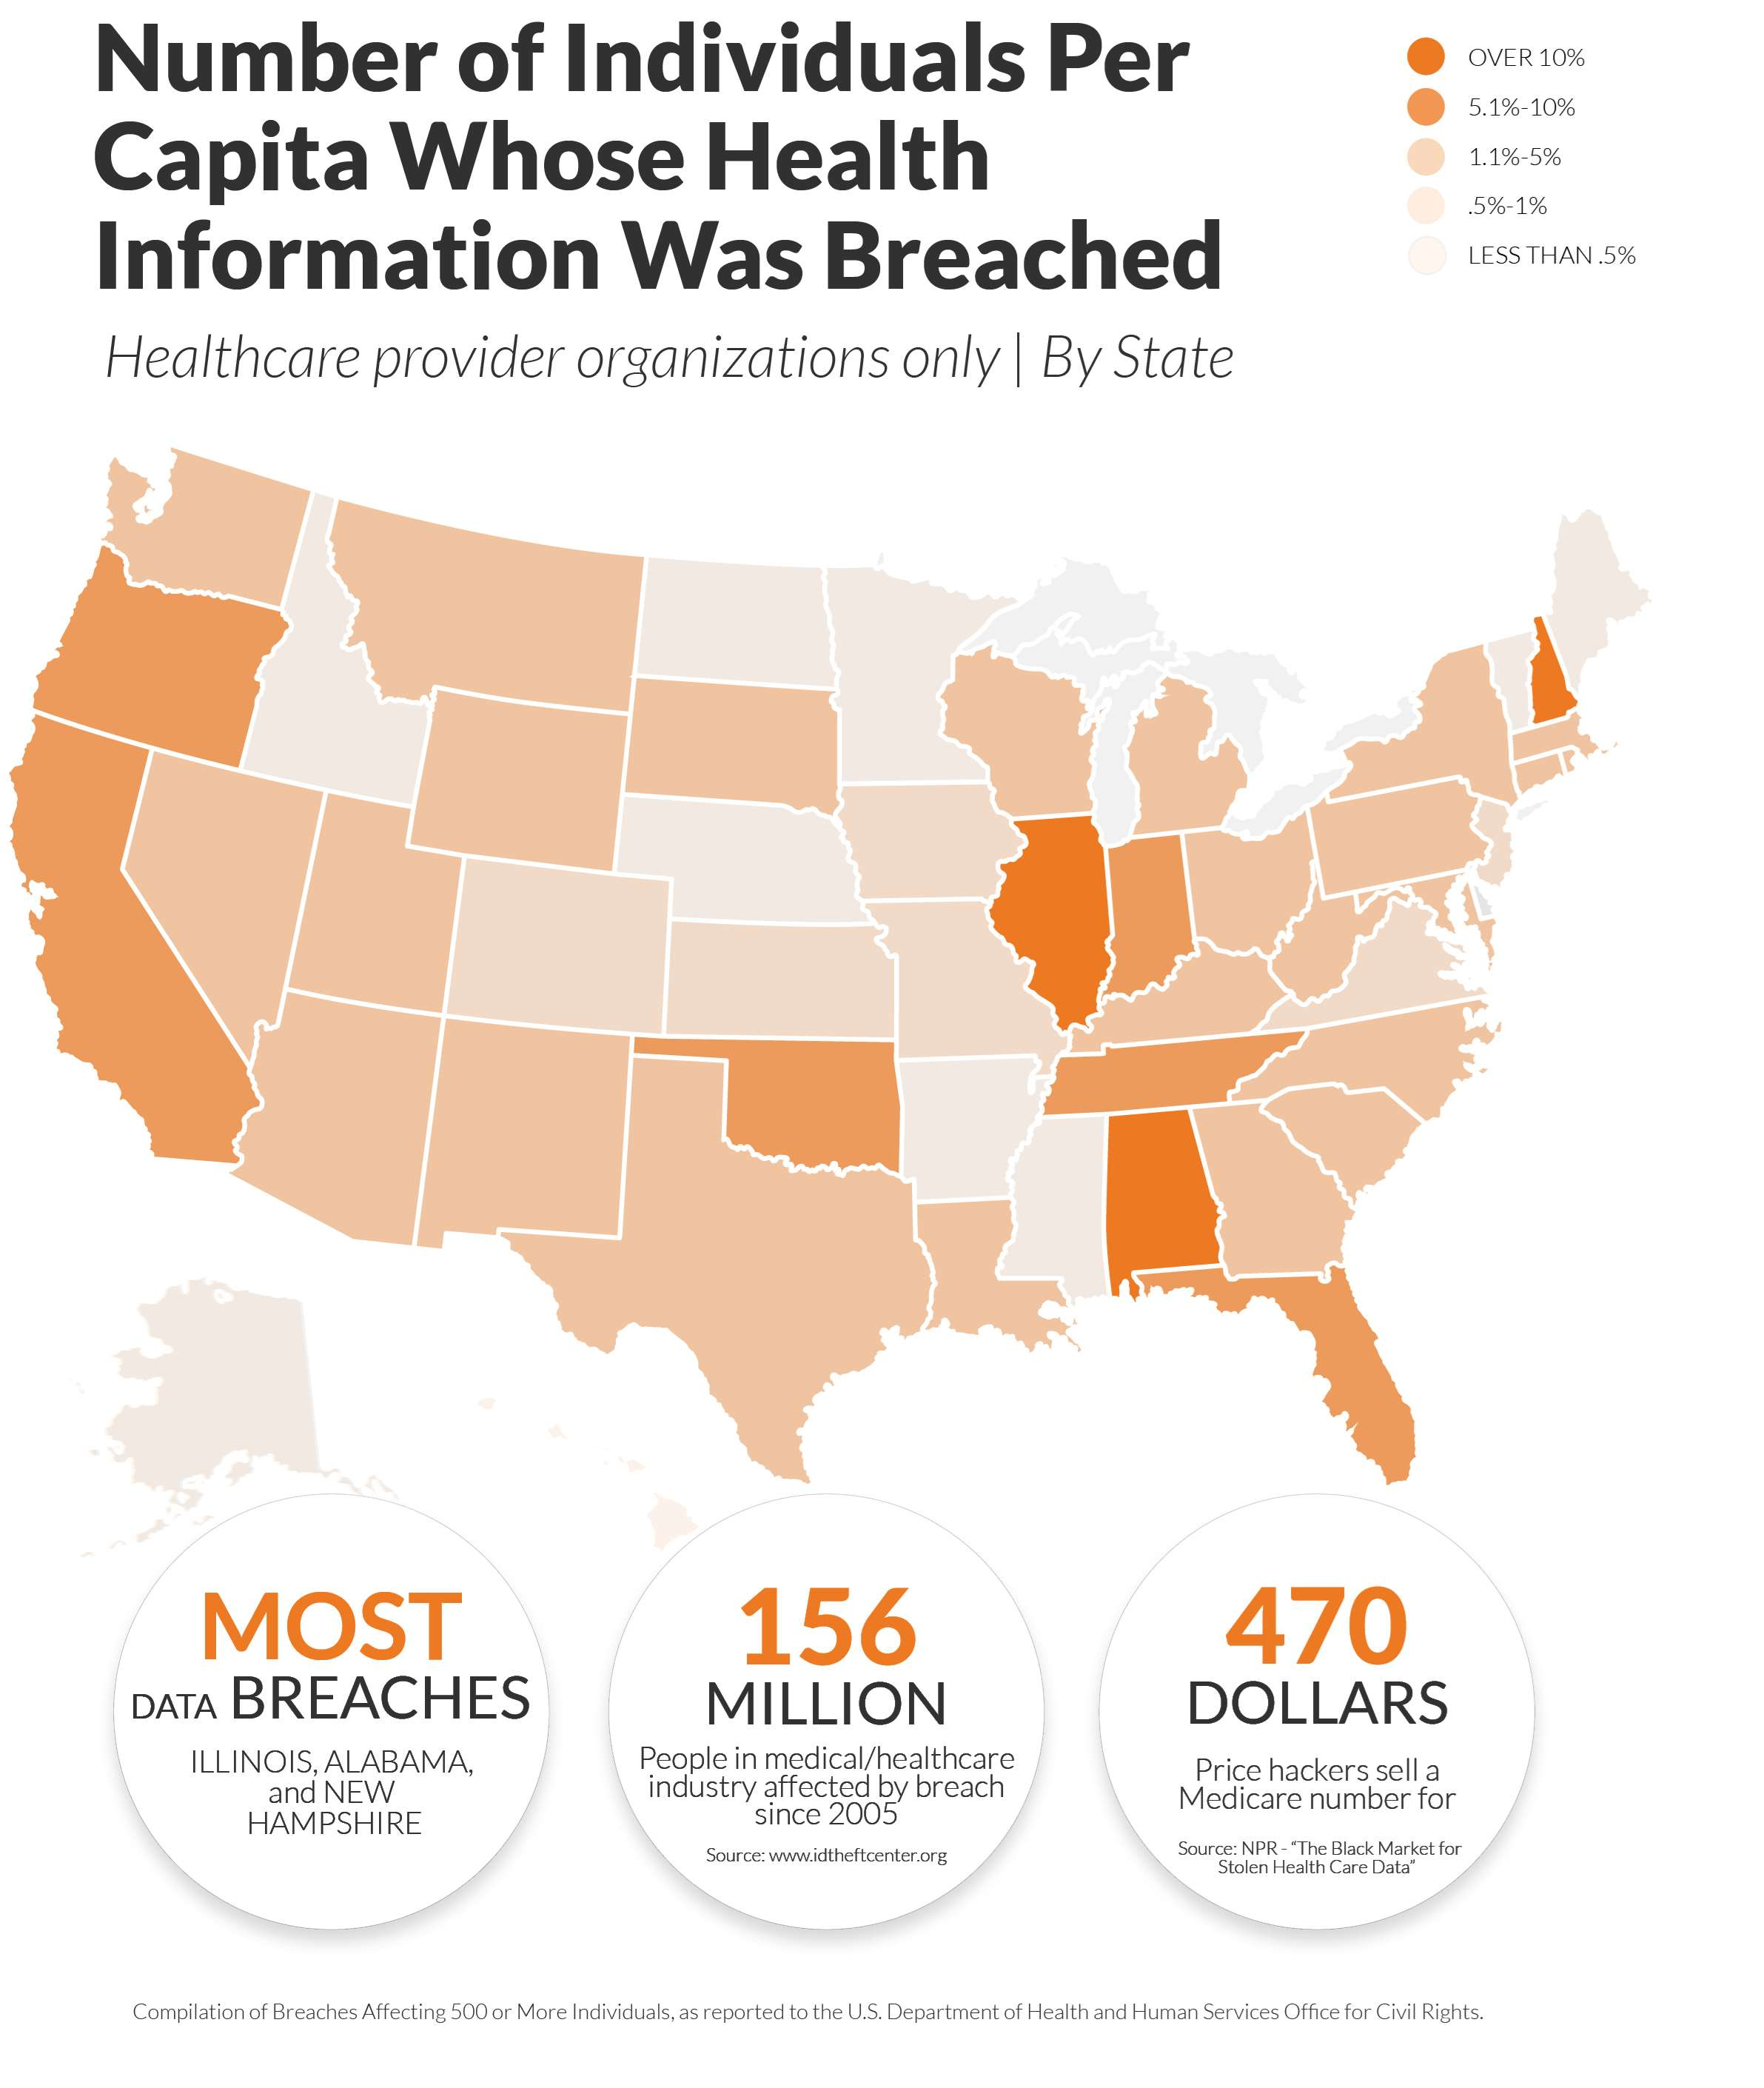 number of individuals per capita whose health information was breached